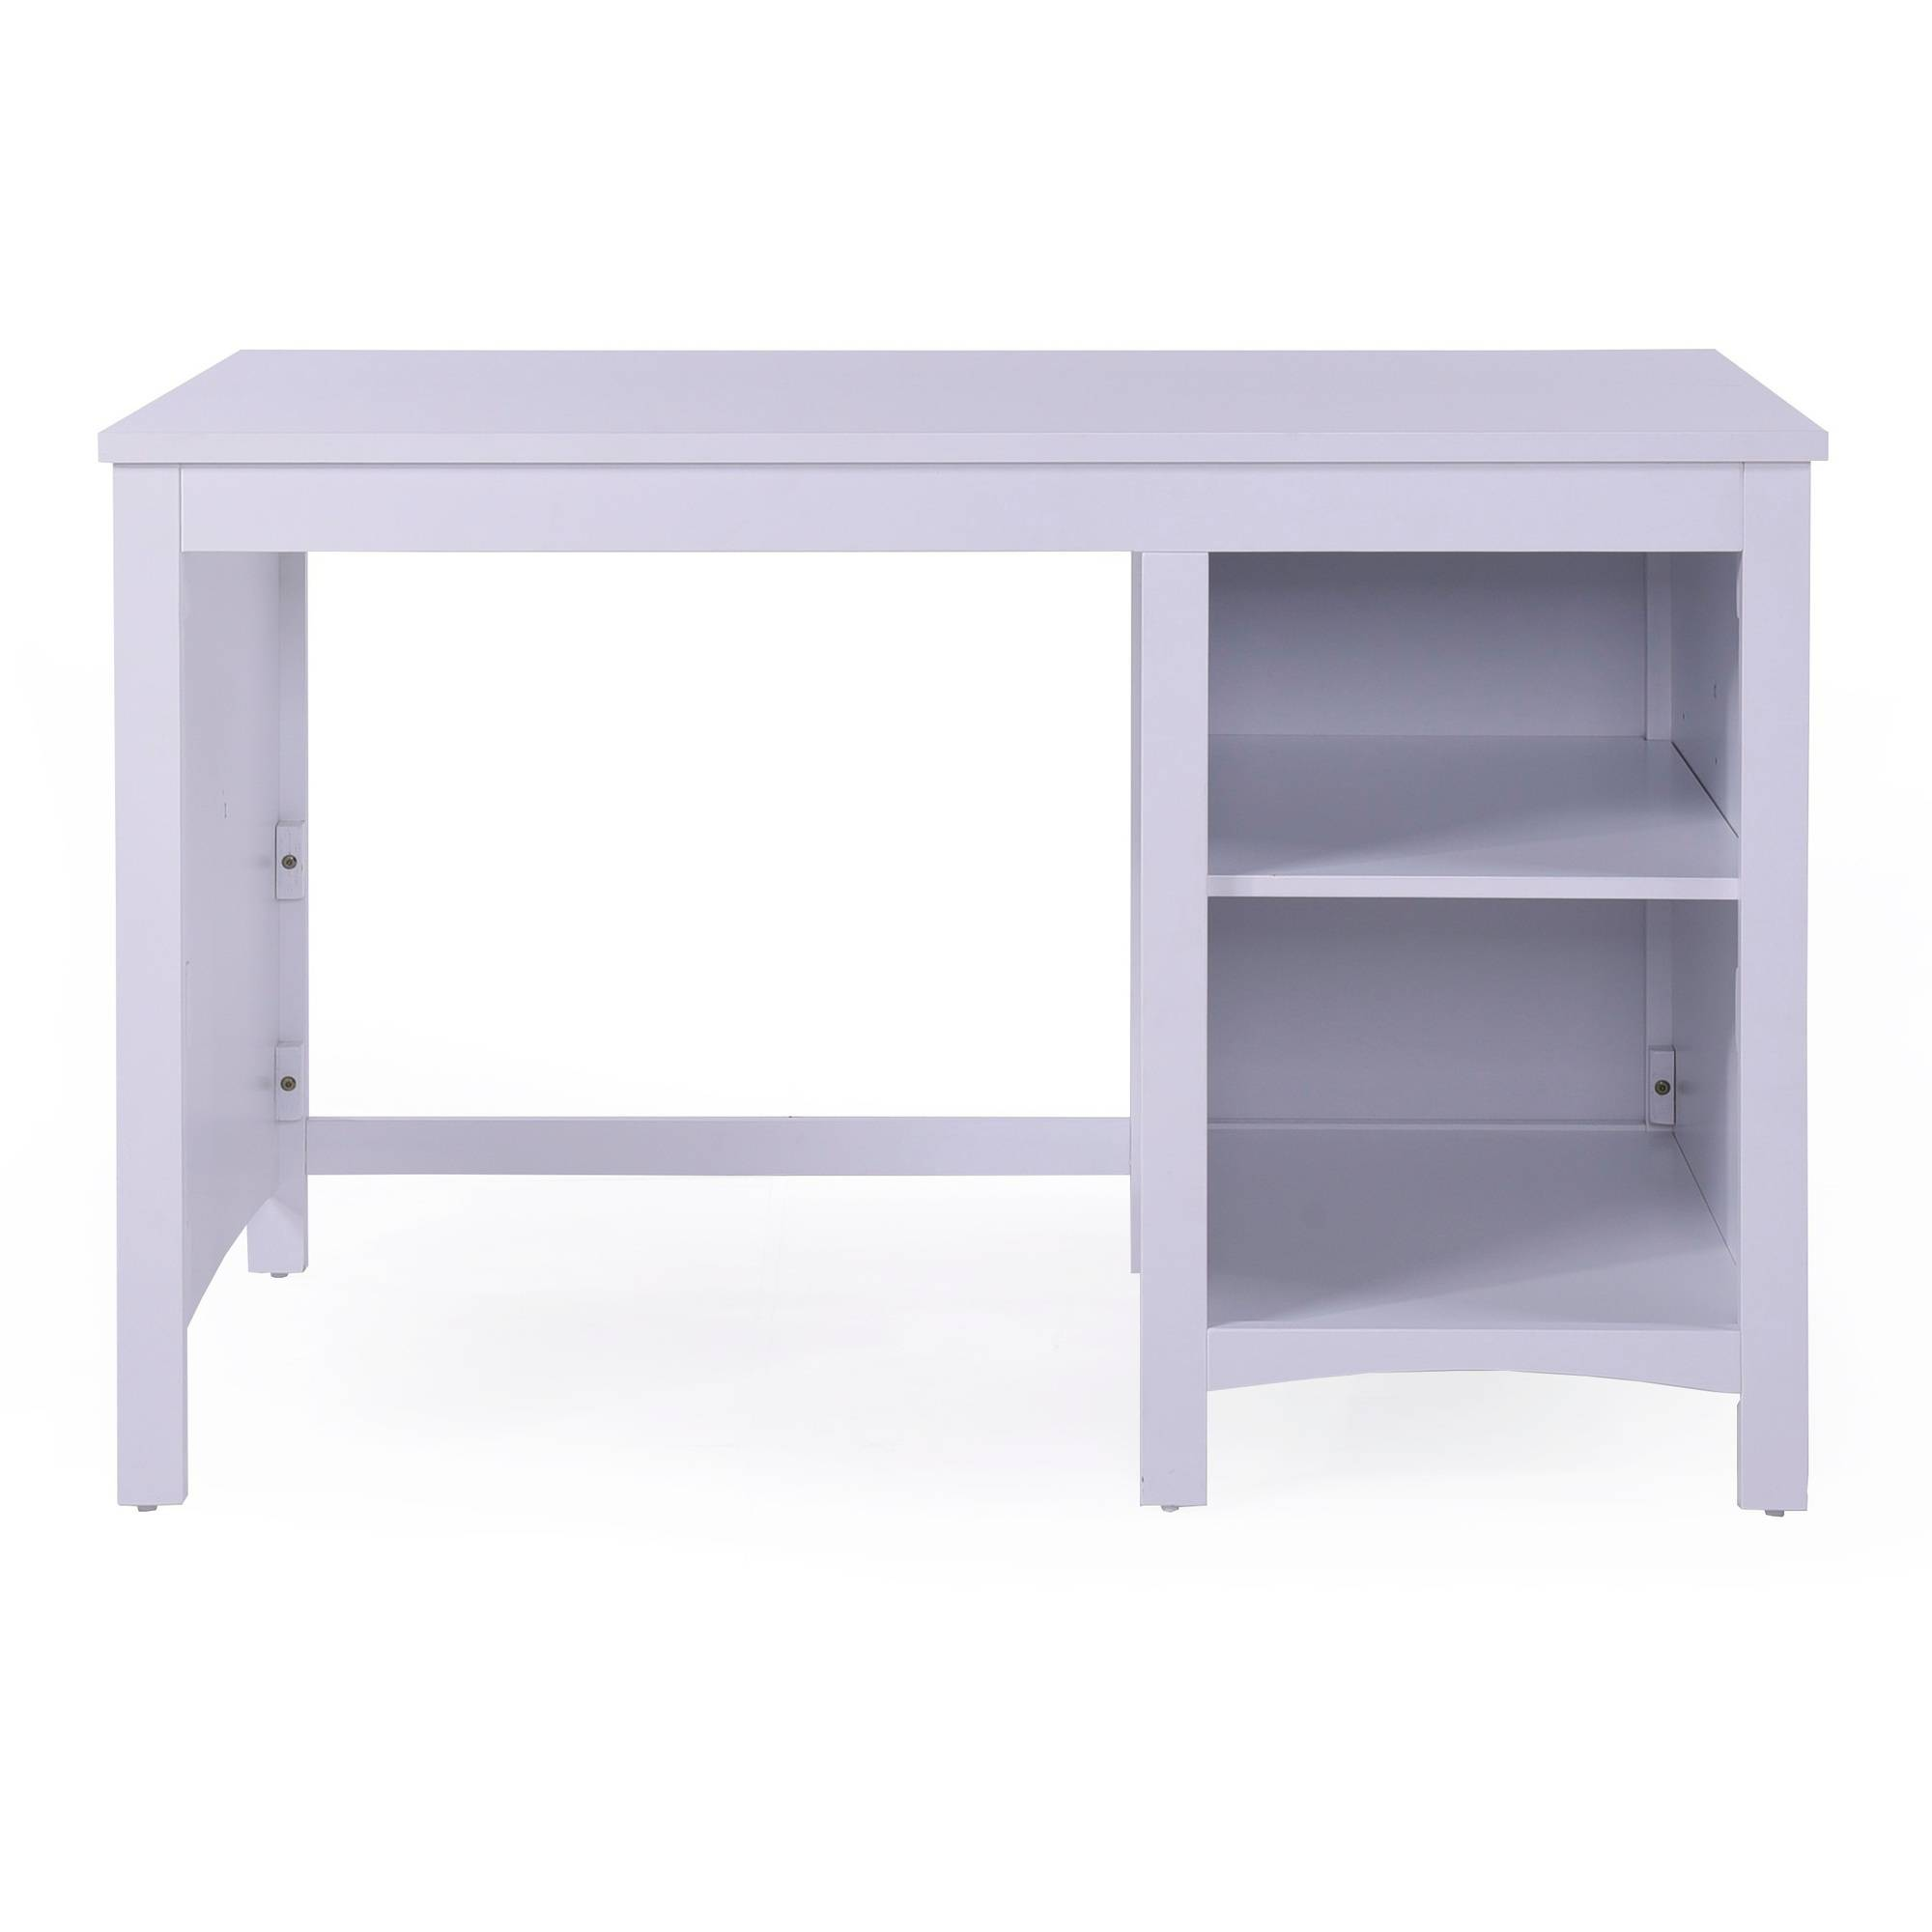 Better Homes and Gardens Kids Panama Beach Desk, White by Generic